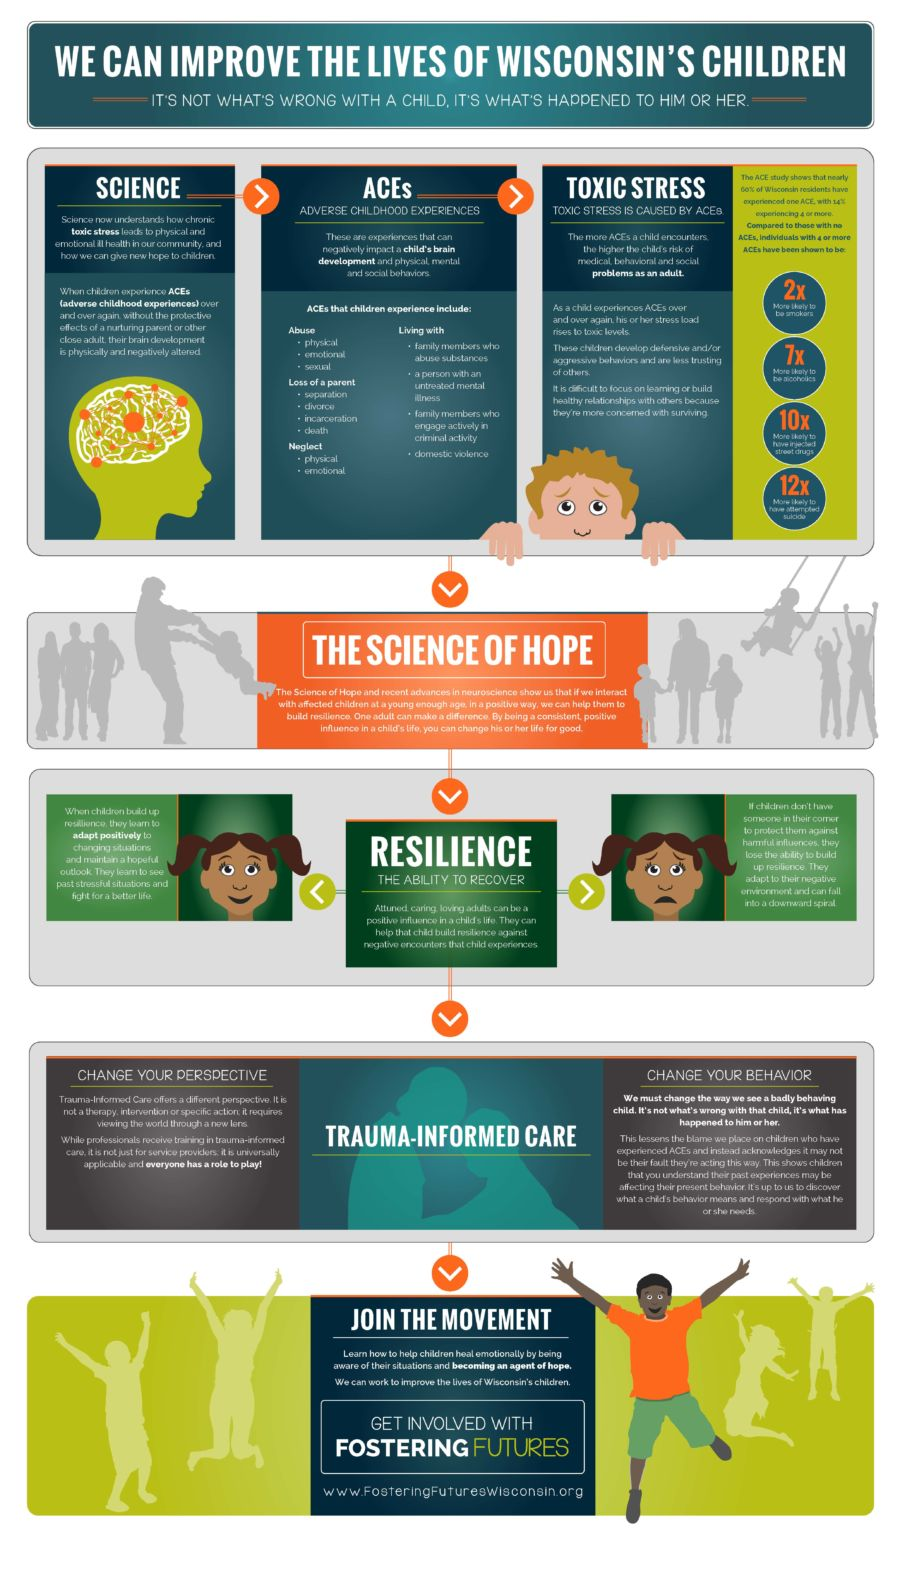 We Can Improve the Lives of Wisconsin Children: Infographic